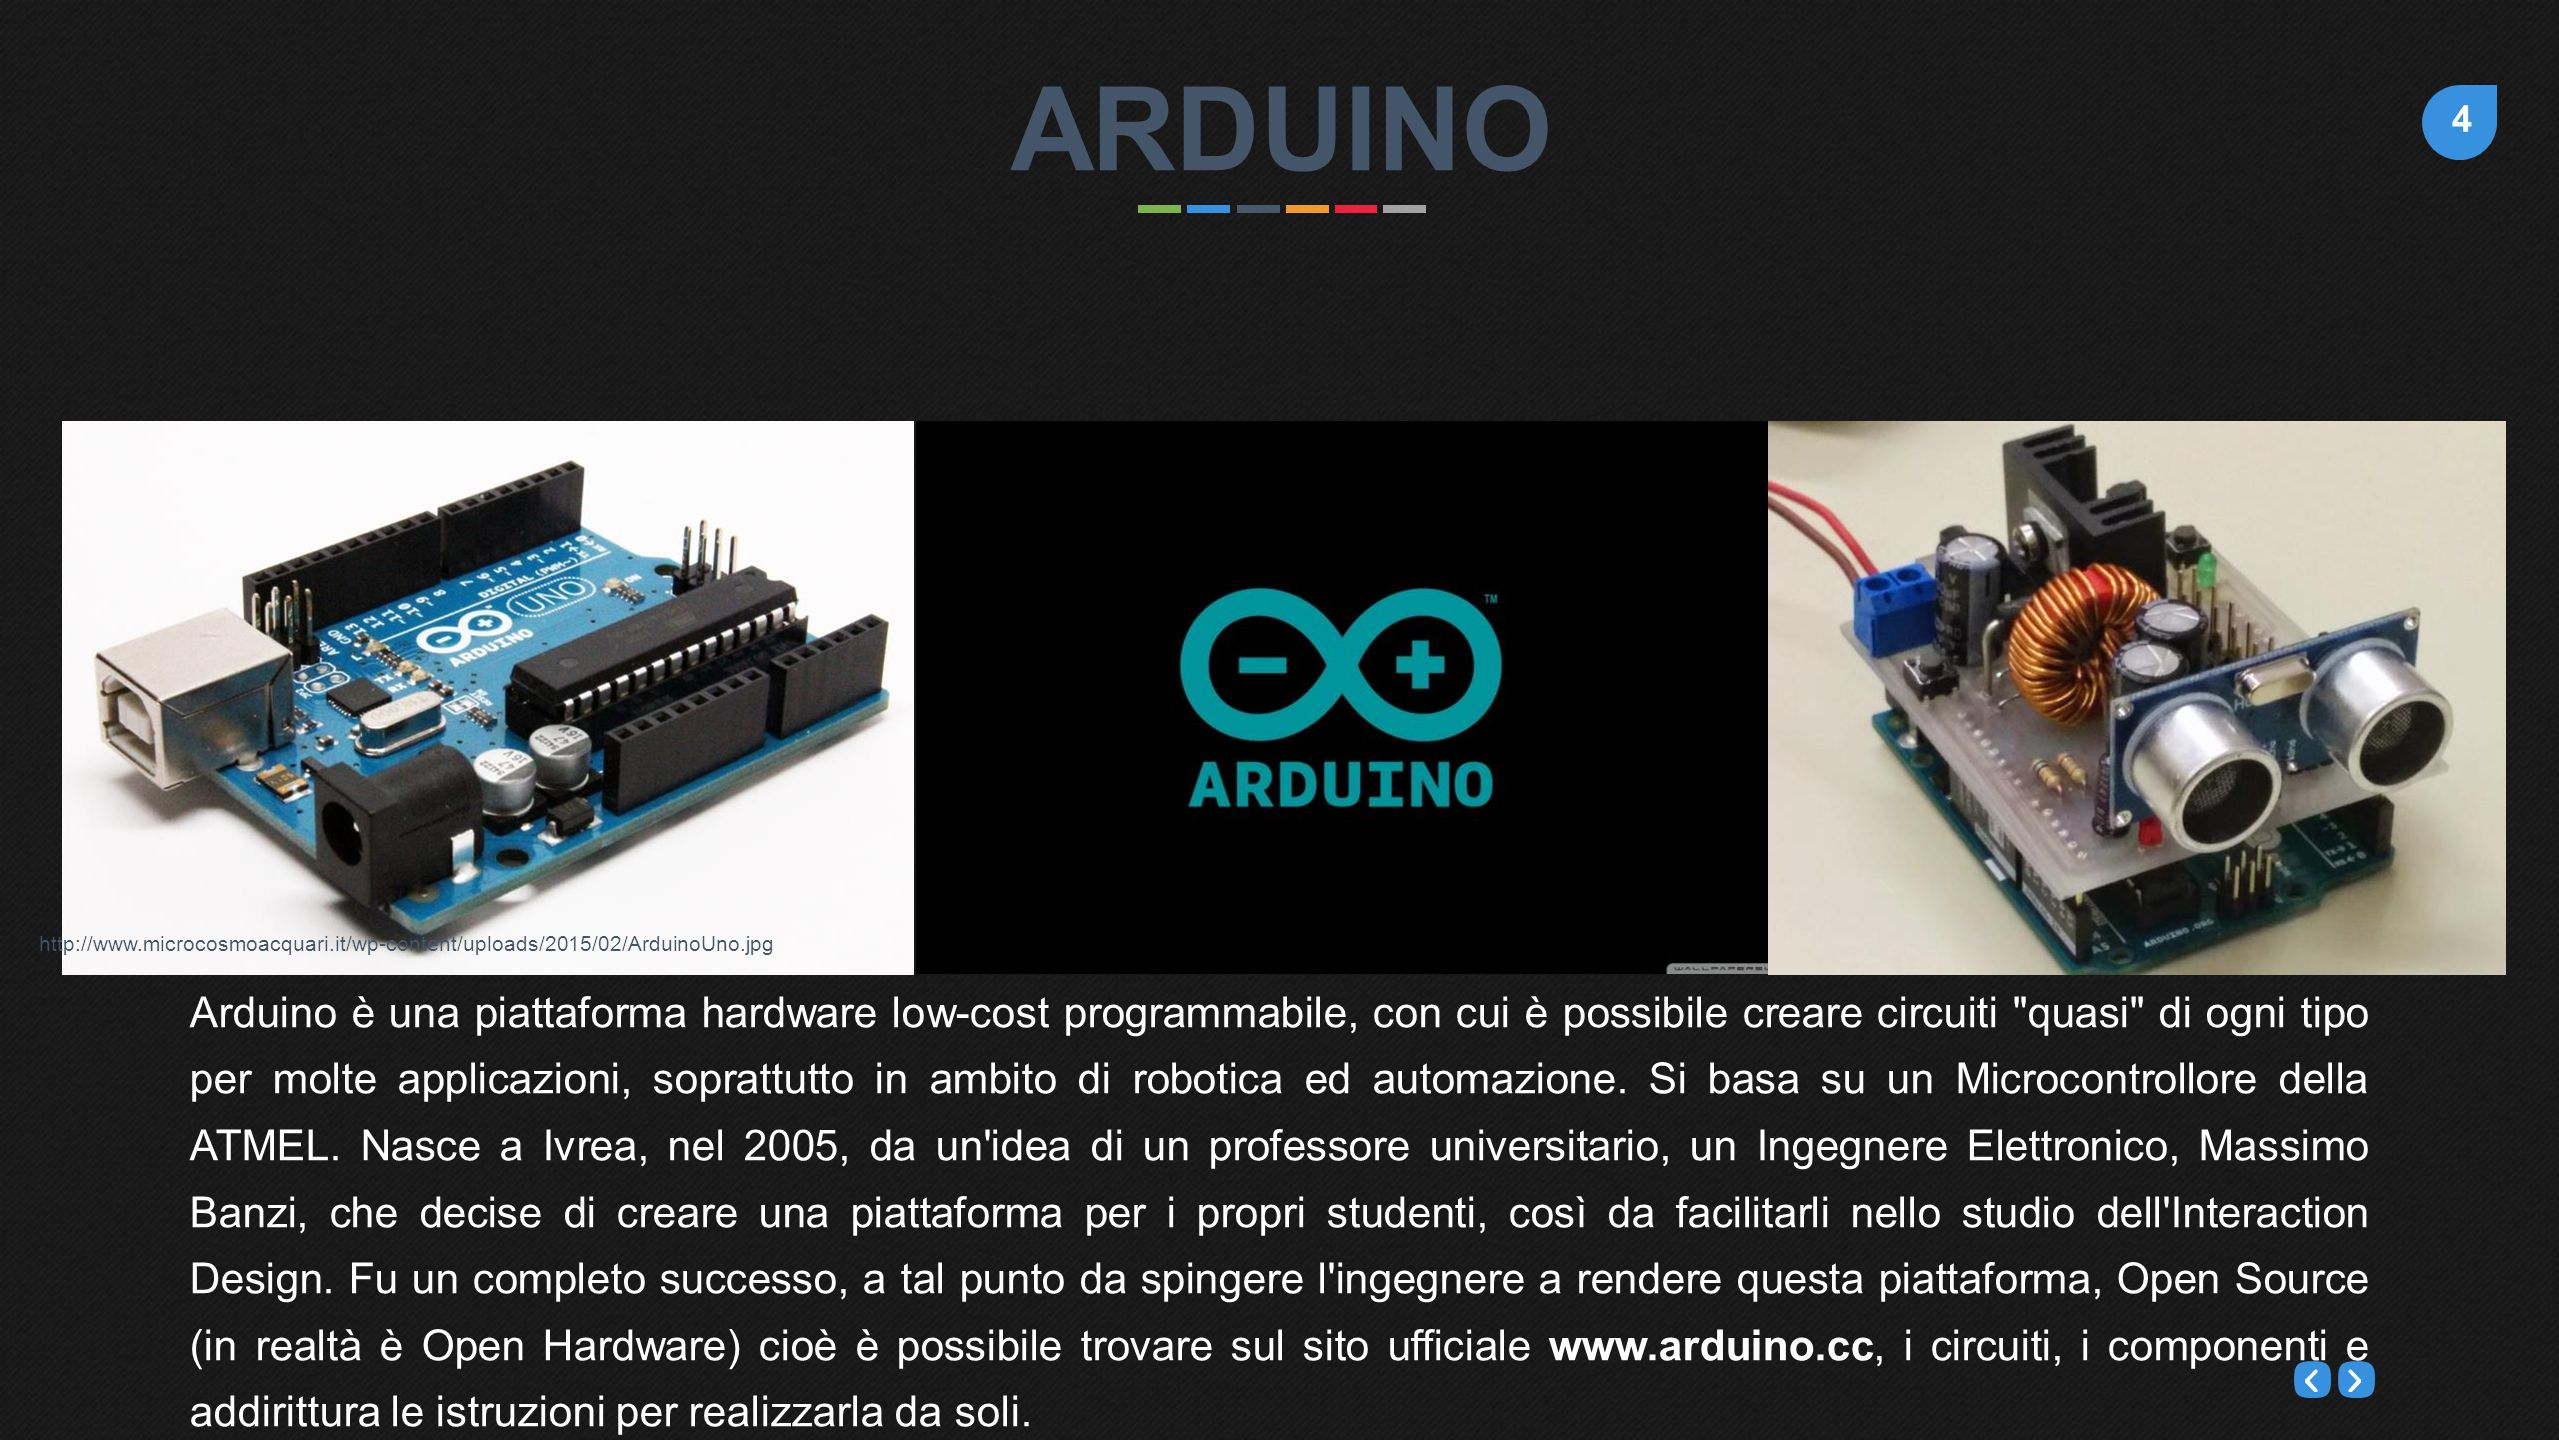 ARDUINO ARDUINO. Lorem Ipsum has two main statistical methodologies are used in data analysis.